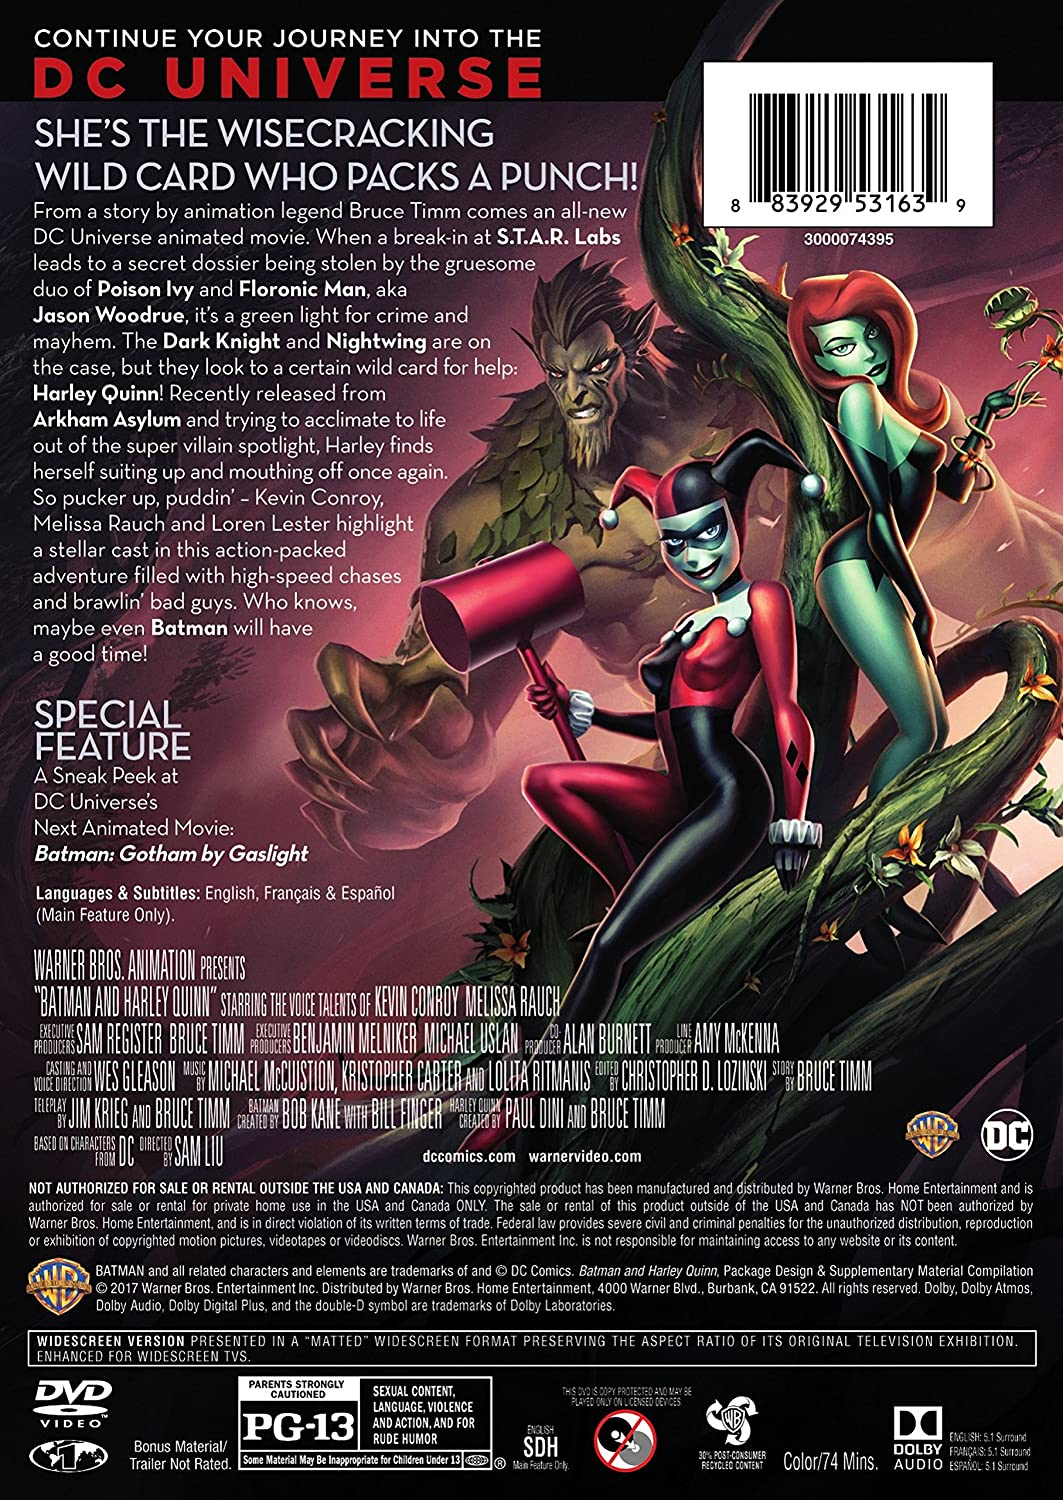 Amazon.com: Batman & Harley Quinn (DVD): Kevin Conroy ...